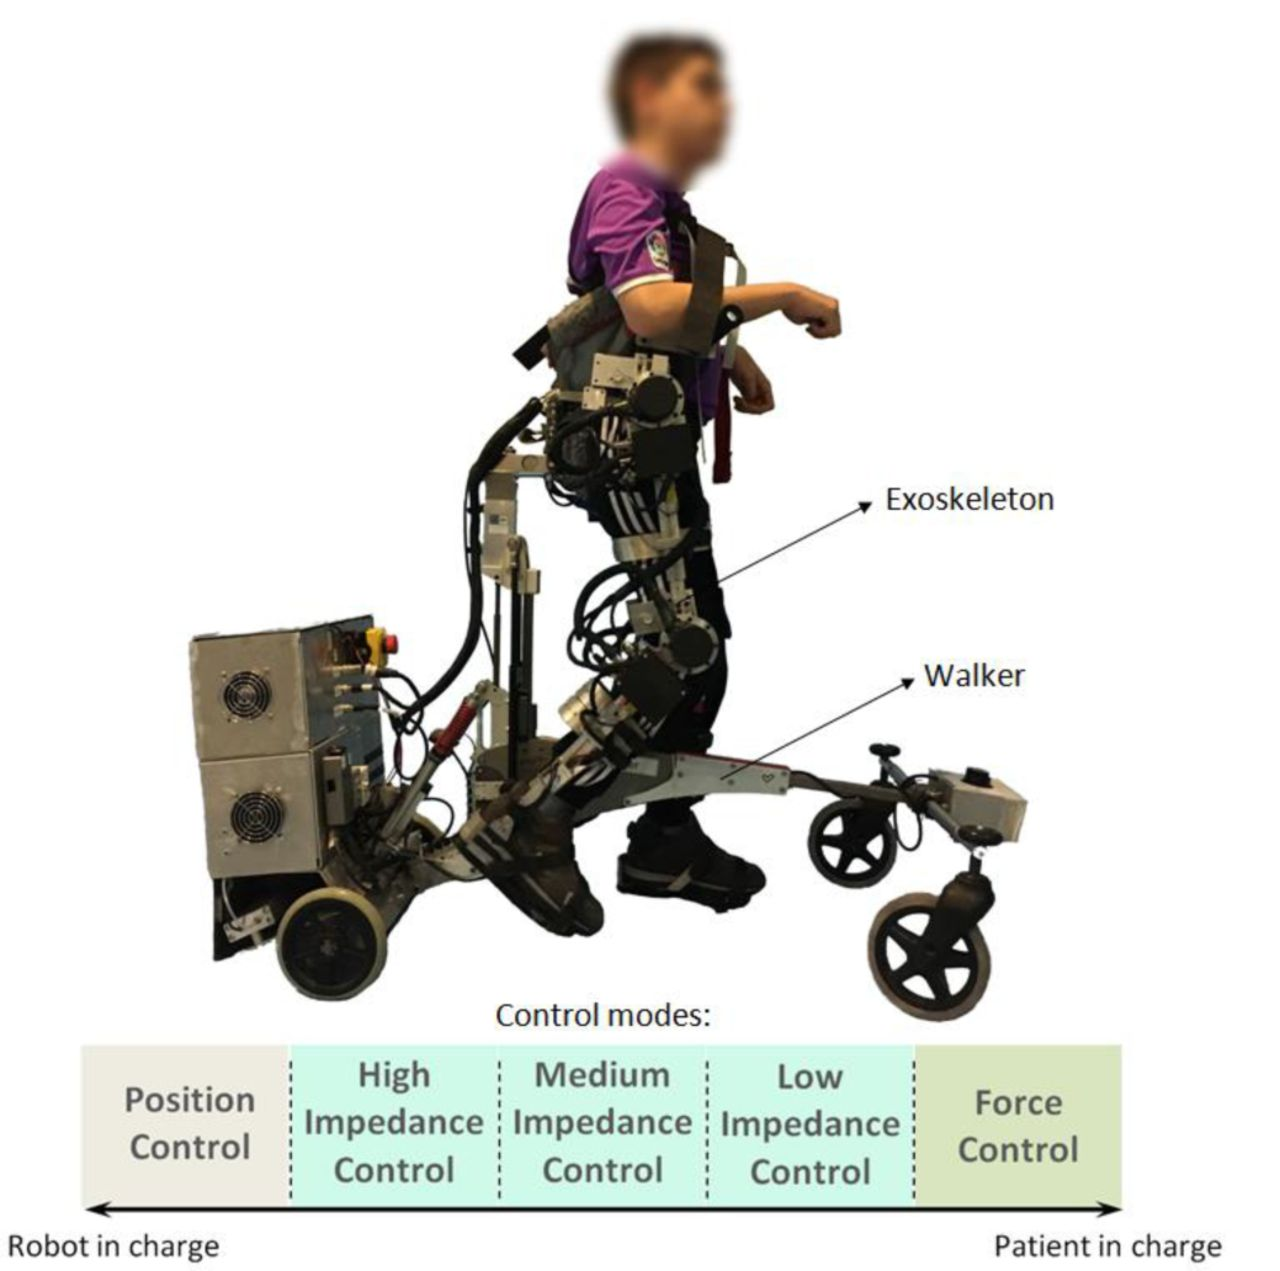 A robot-based gait training therapy for pediatric population